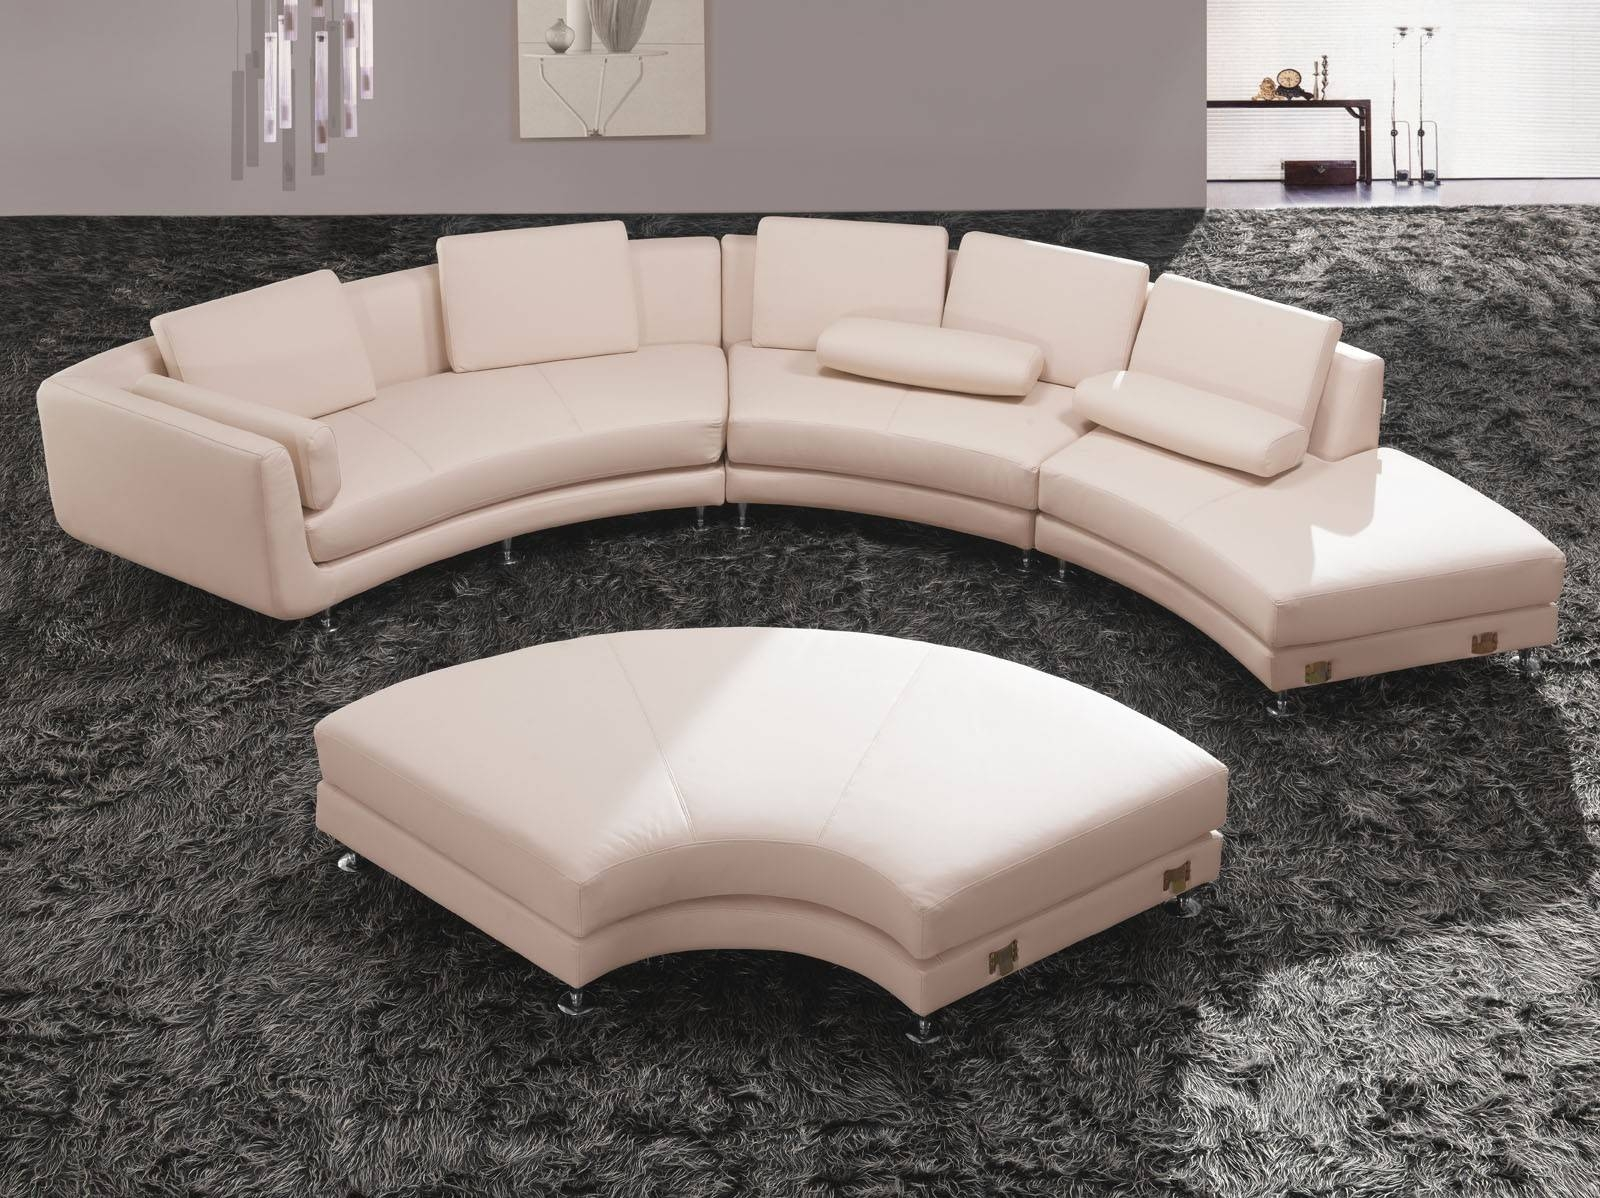 Tosh Furniture Ultra Modern Sectional Sofa – Flap Stores Within Tosh Sectional Sofas (View 15 of 15)